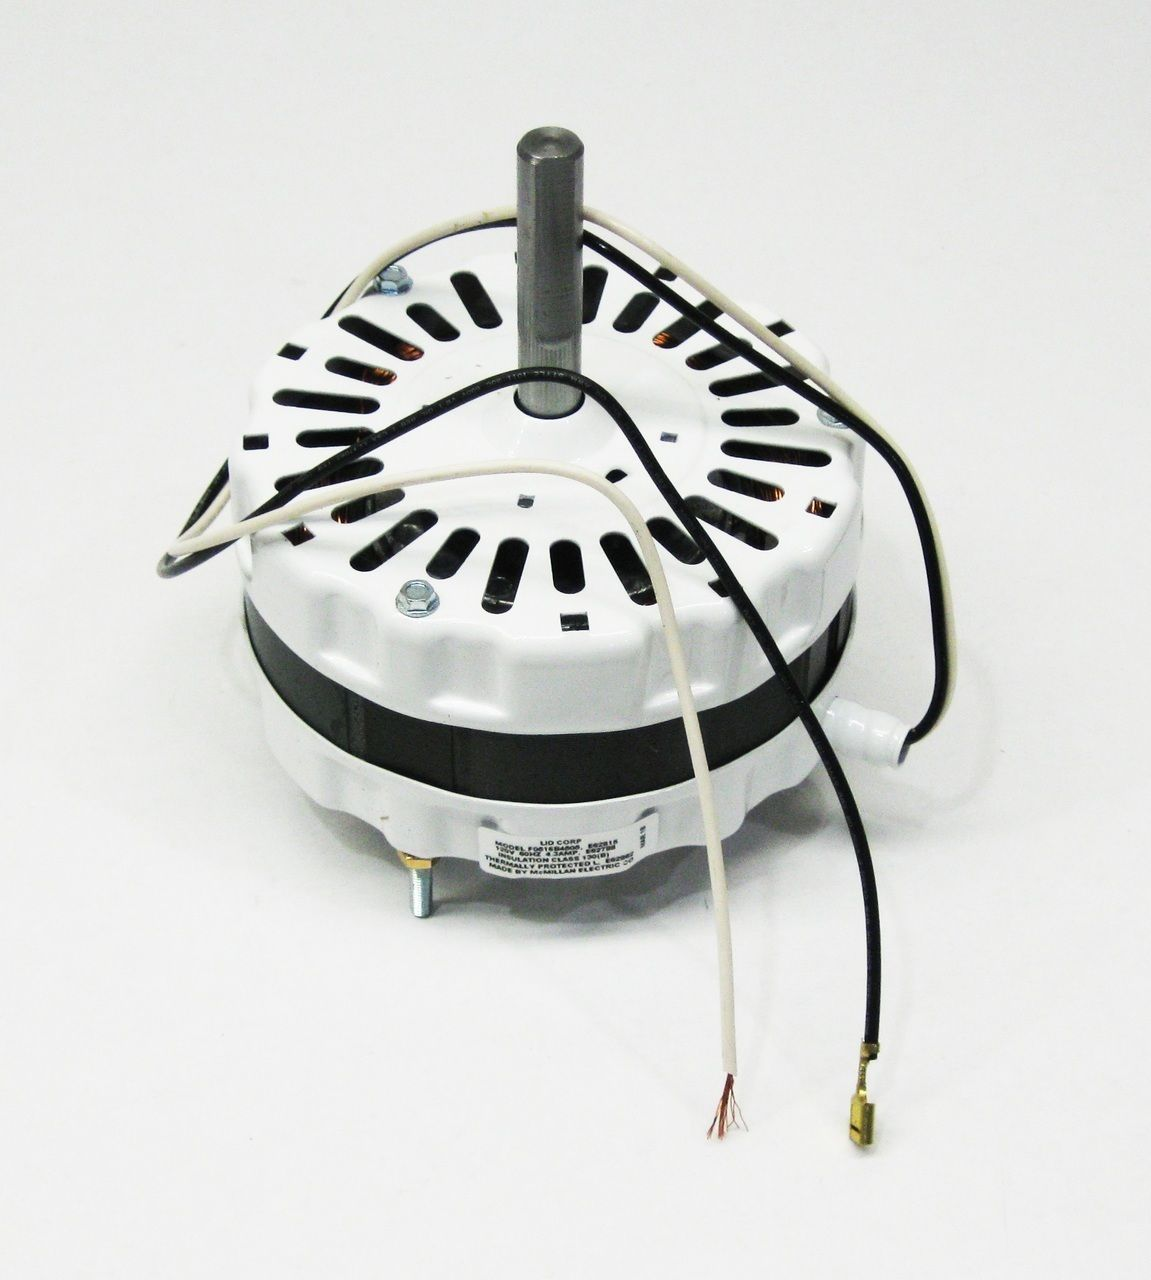 Attic Fan Motor Ventilator For Broan 97009317 99080267 White 5 Diameter Attic Fan Broan Fan Motor